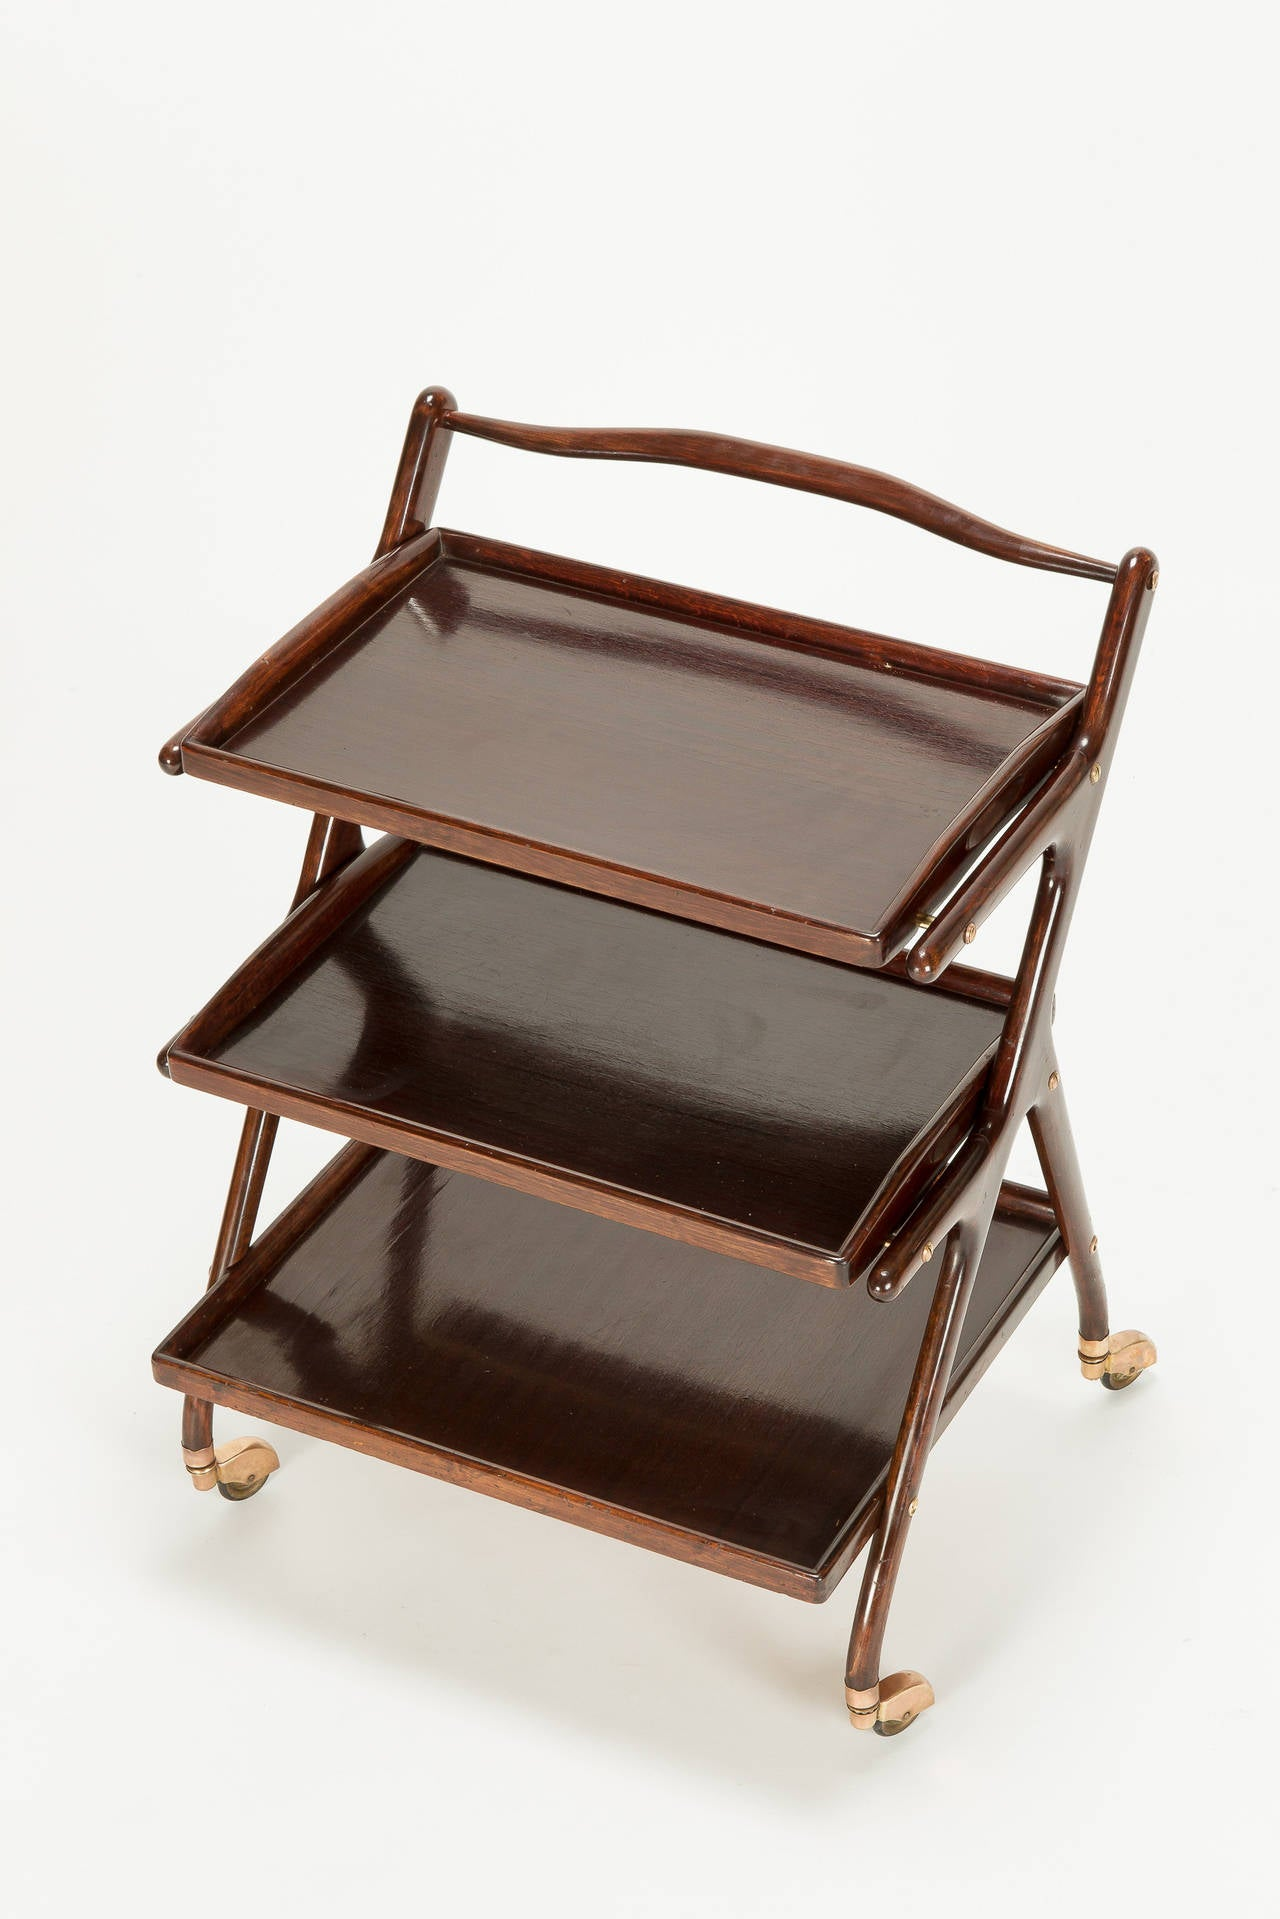 Italian Mahogany Serving Trolley by Cesare Lacca, 1950s 1